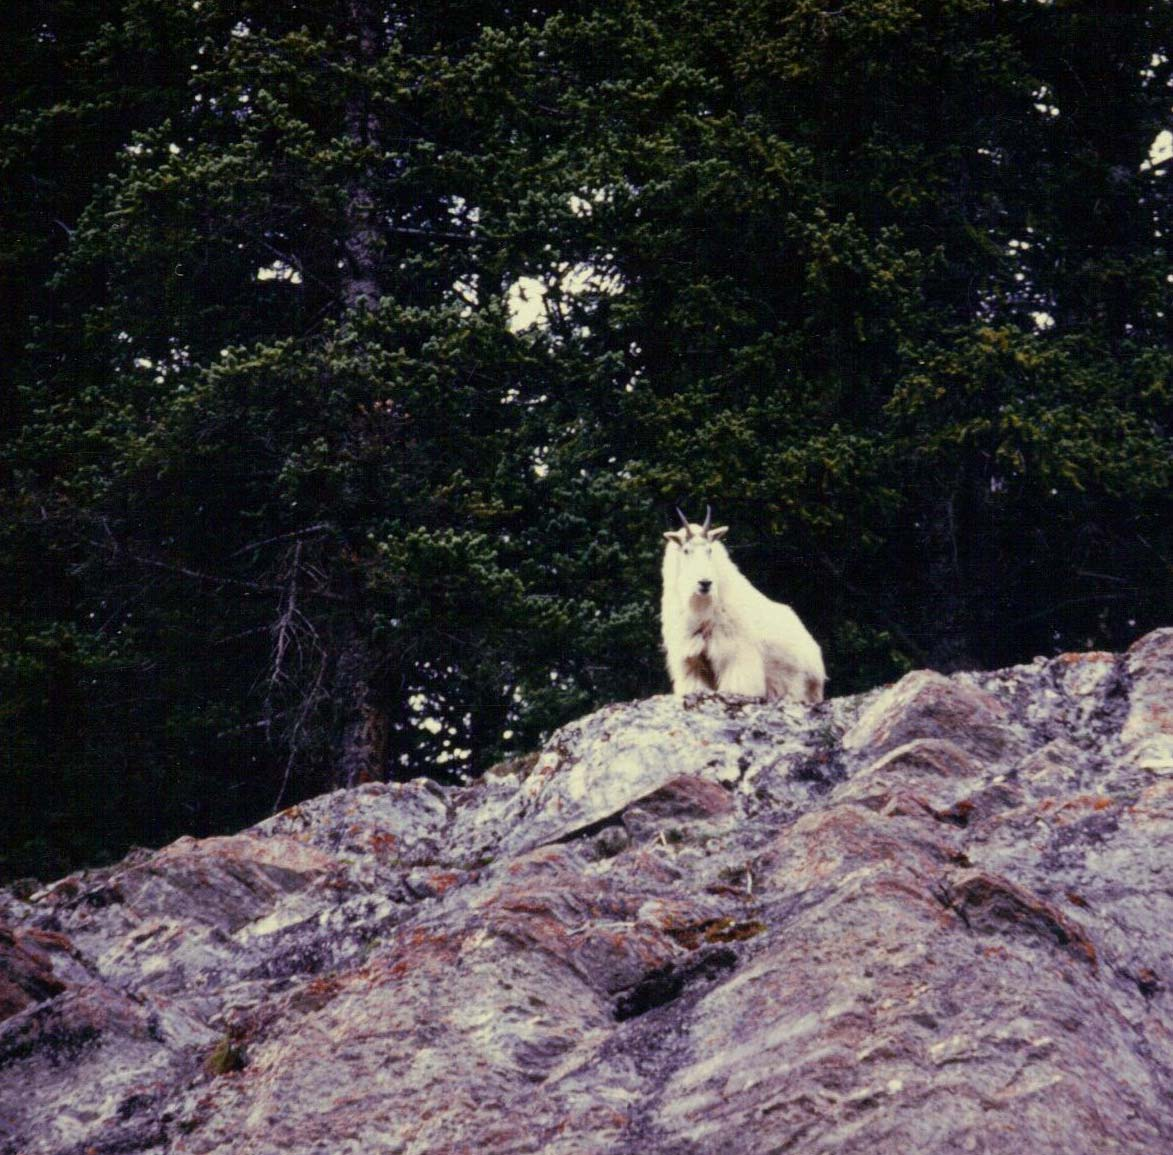 Rocky-Mountain-Goat-Looking-Down-resized.jpg